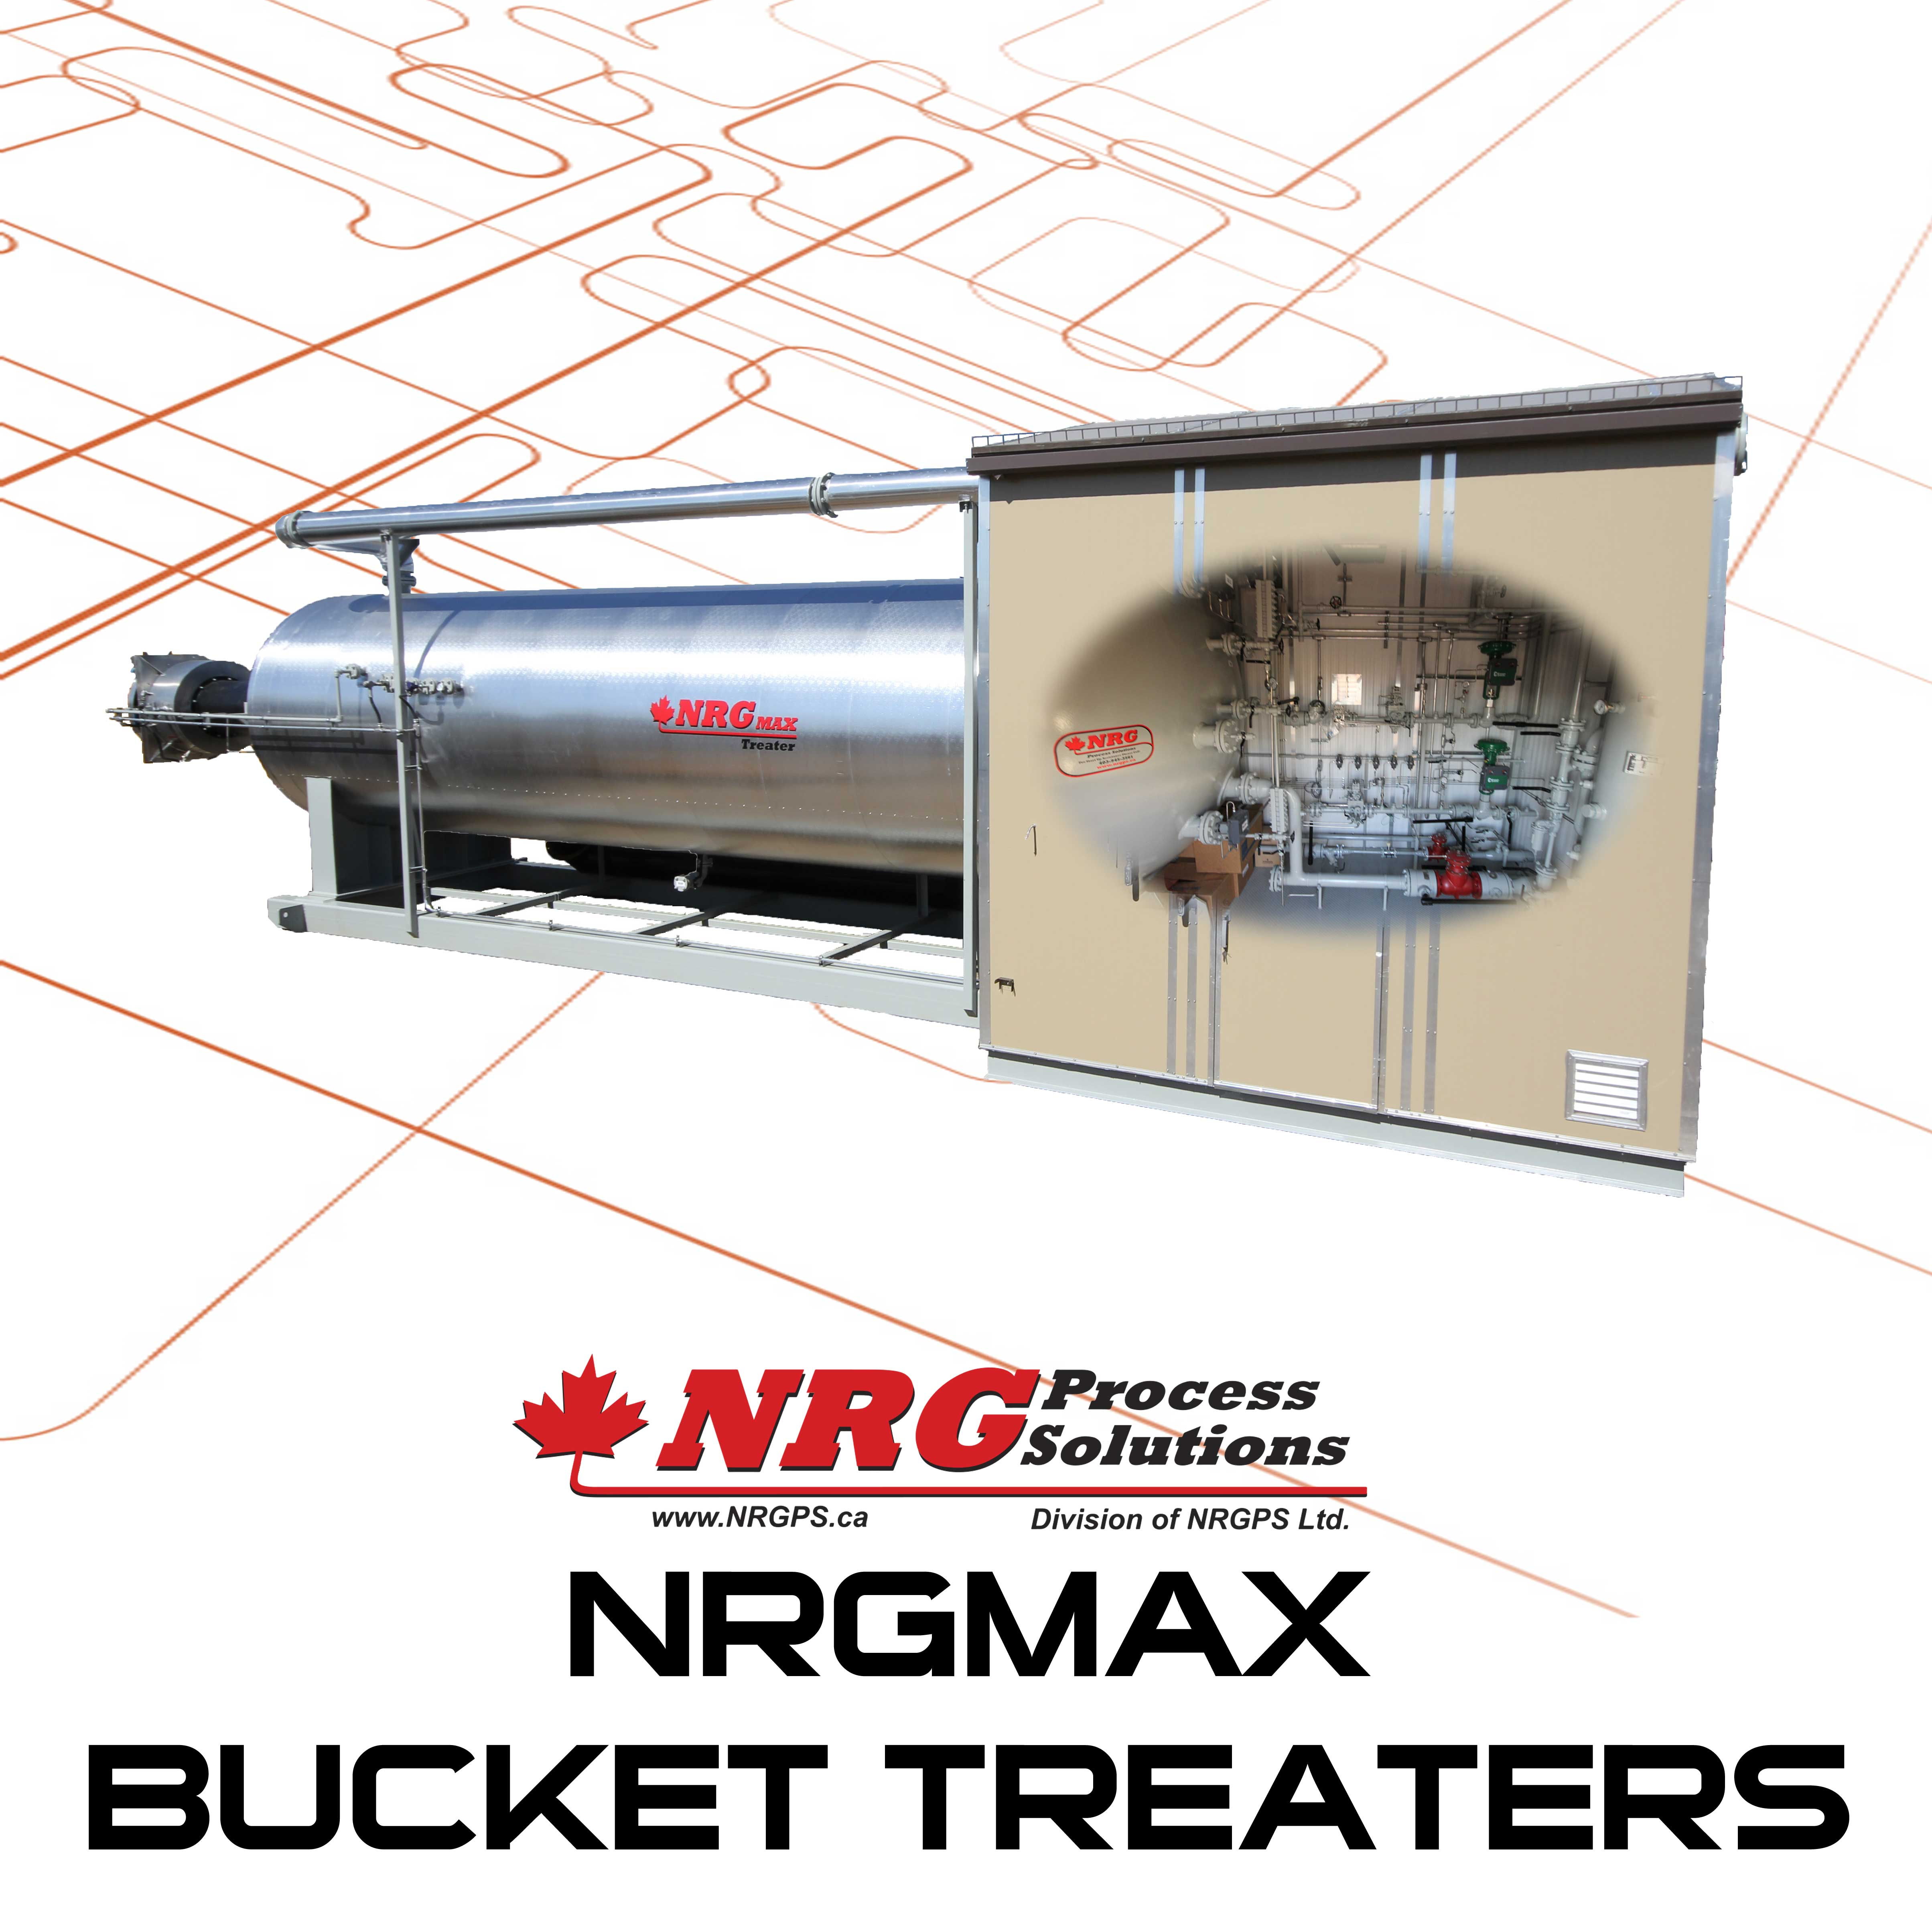 NRGMAX-Bucket-Treaters-Button